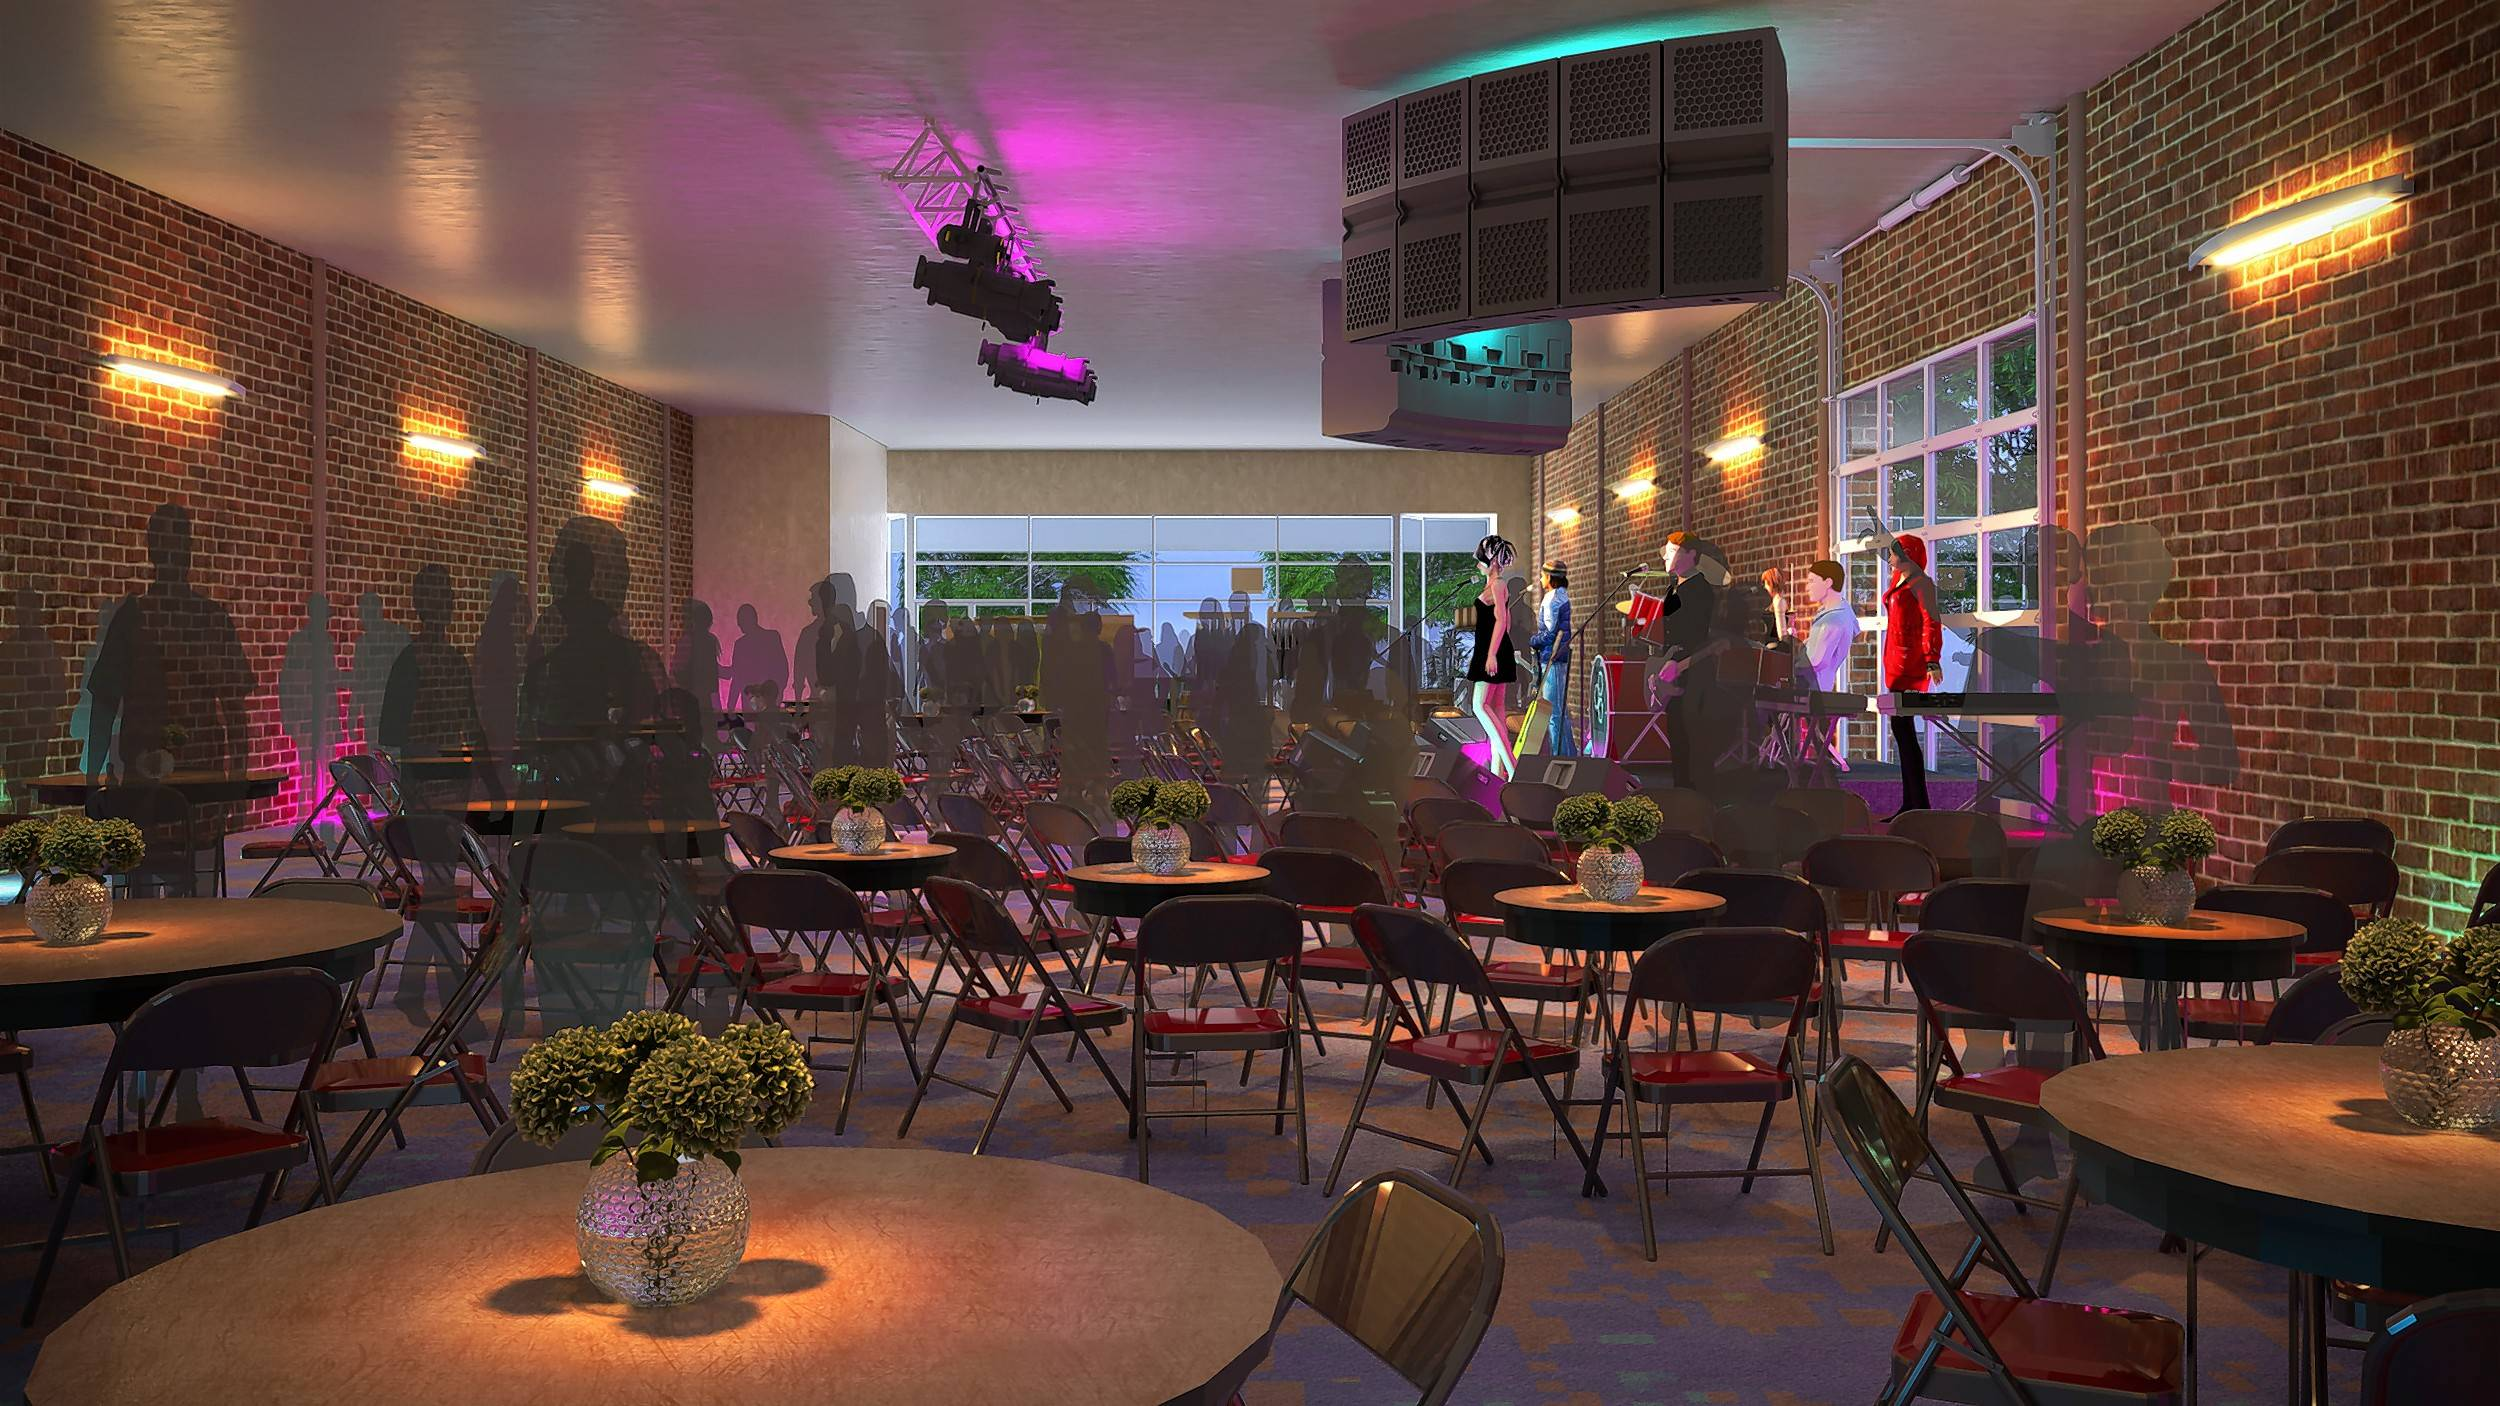 Intimate music venue planned for downtown Aurora